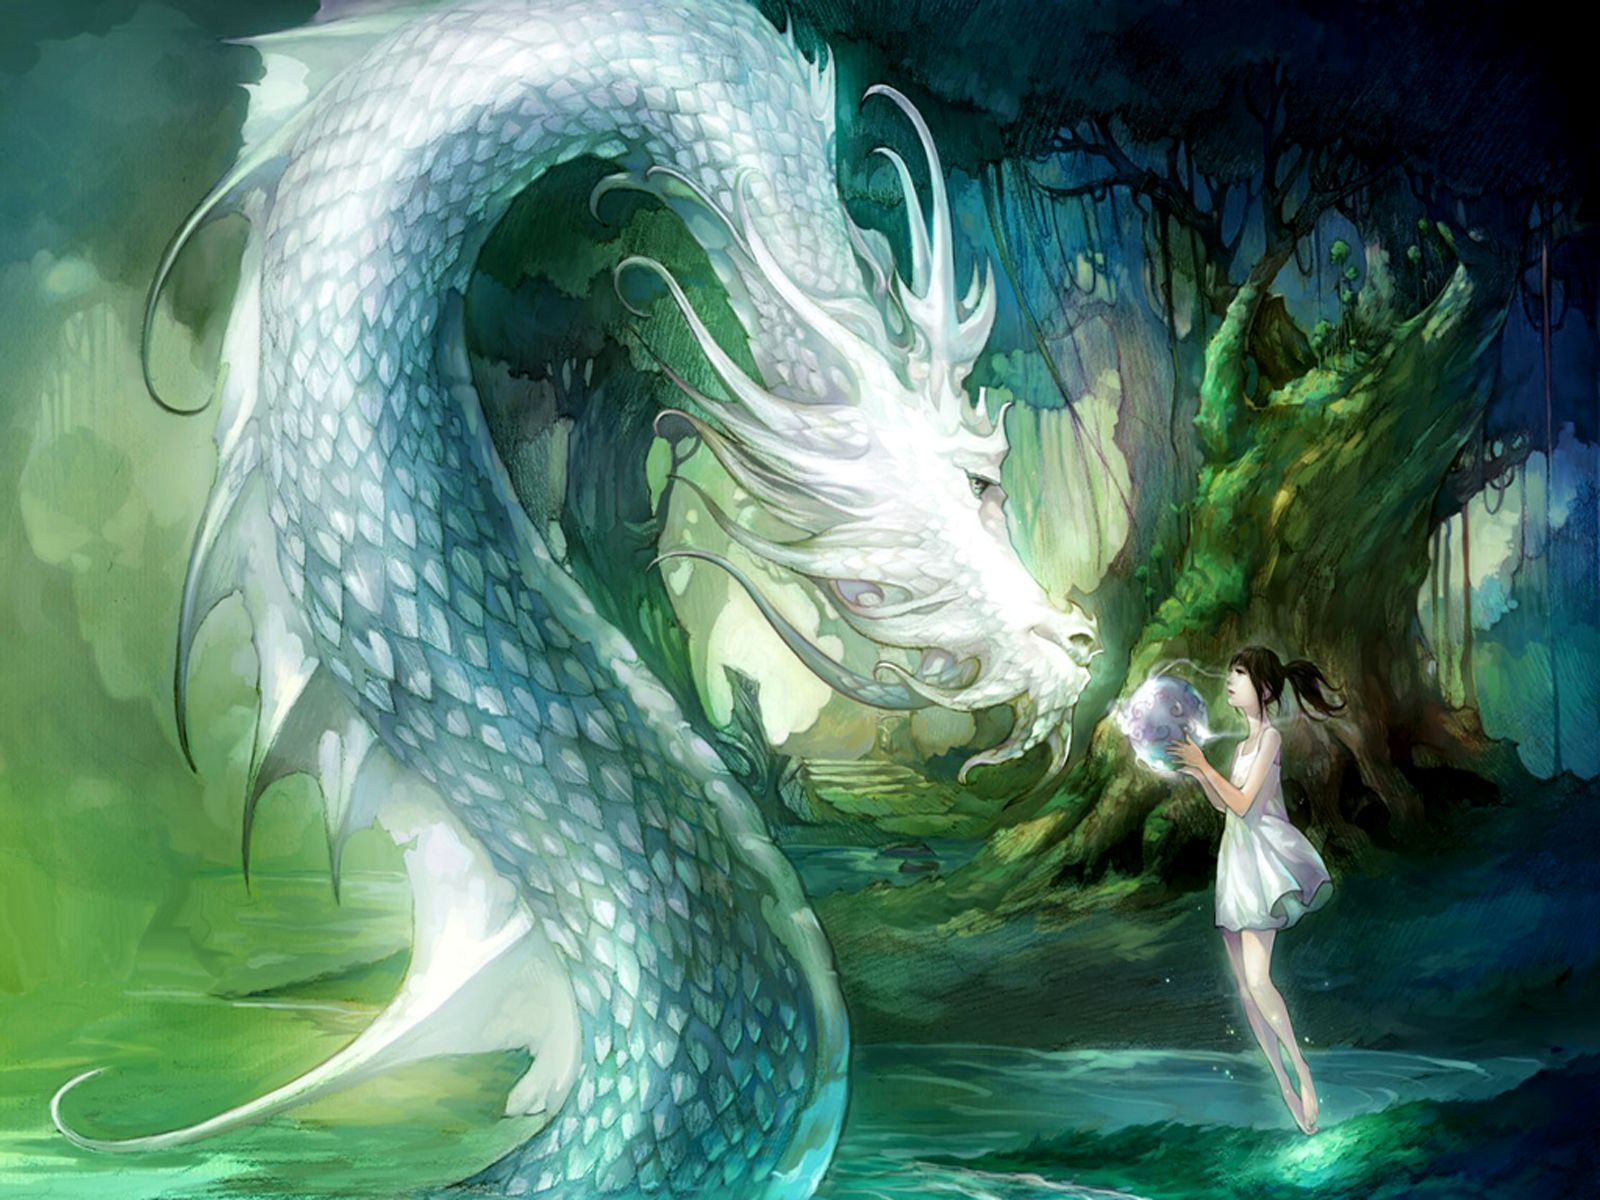 Anime Water Dragon Wallpapers - Top Free Anime Water Dragon